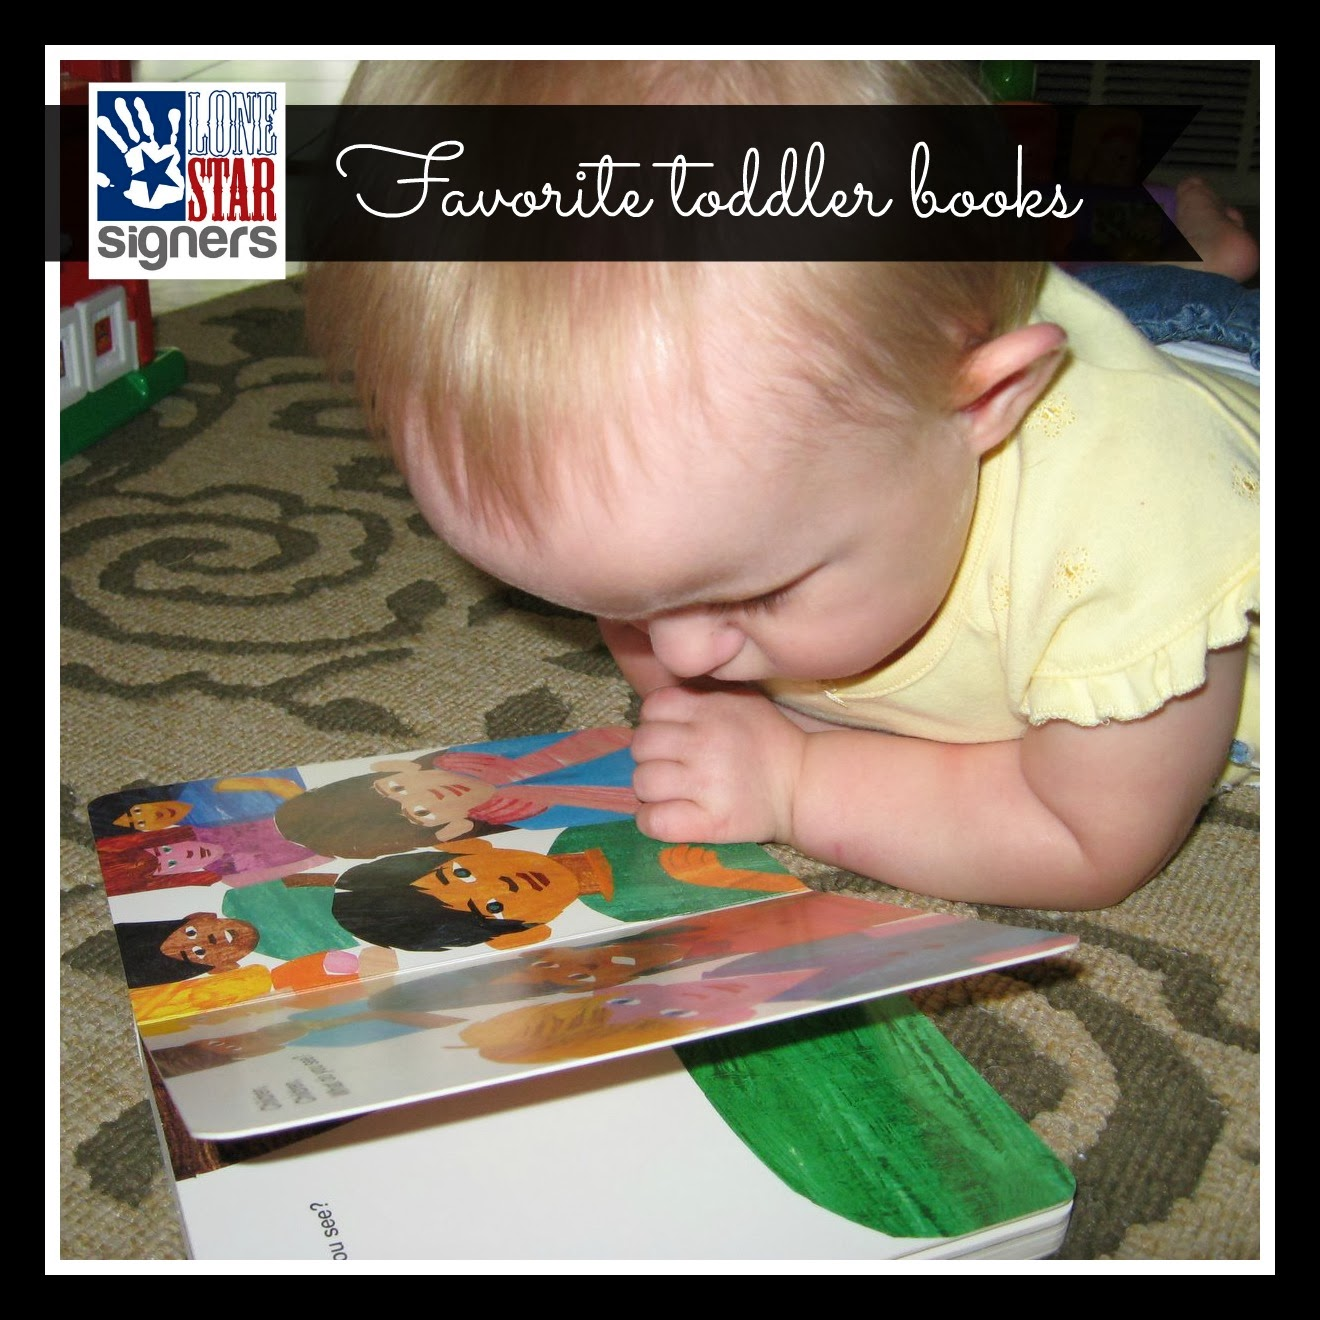 Toddler Book Recommendations | Lone Star Signers